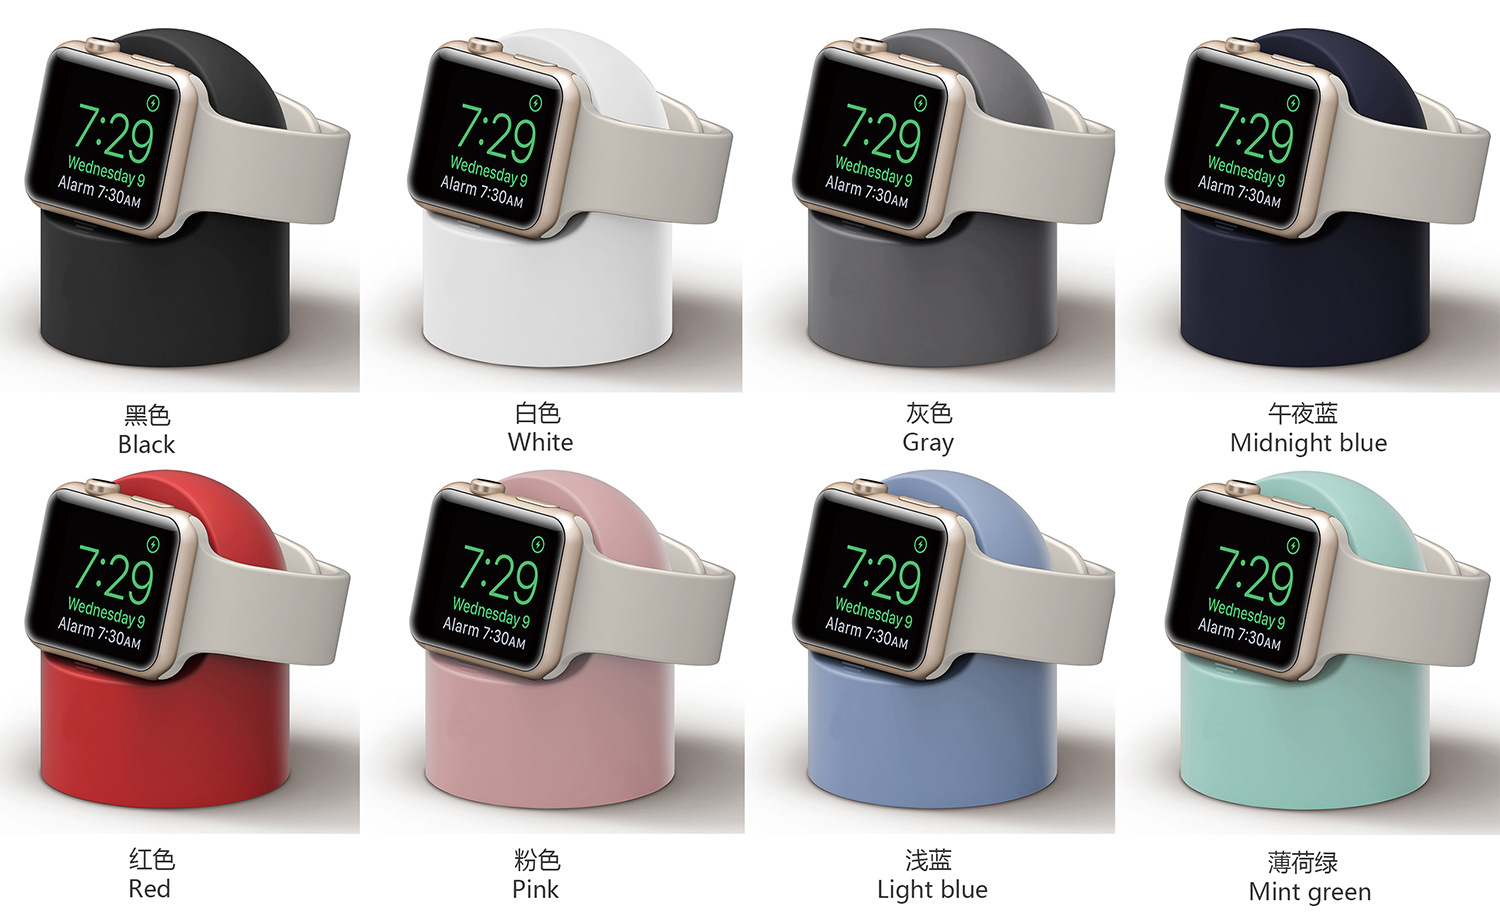 Apple Watch Stand Charger Stand Mount Silicone Dock Holder for Apple Watch Series 4/3/2/1 44mm/42mm/40mm/38mm Charge Cable